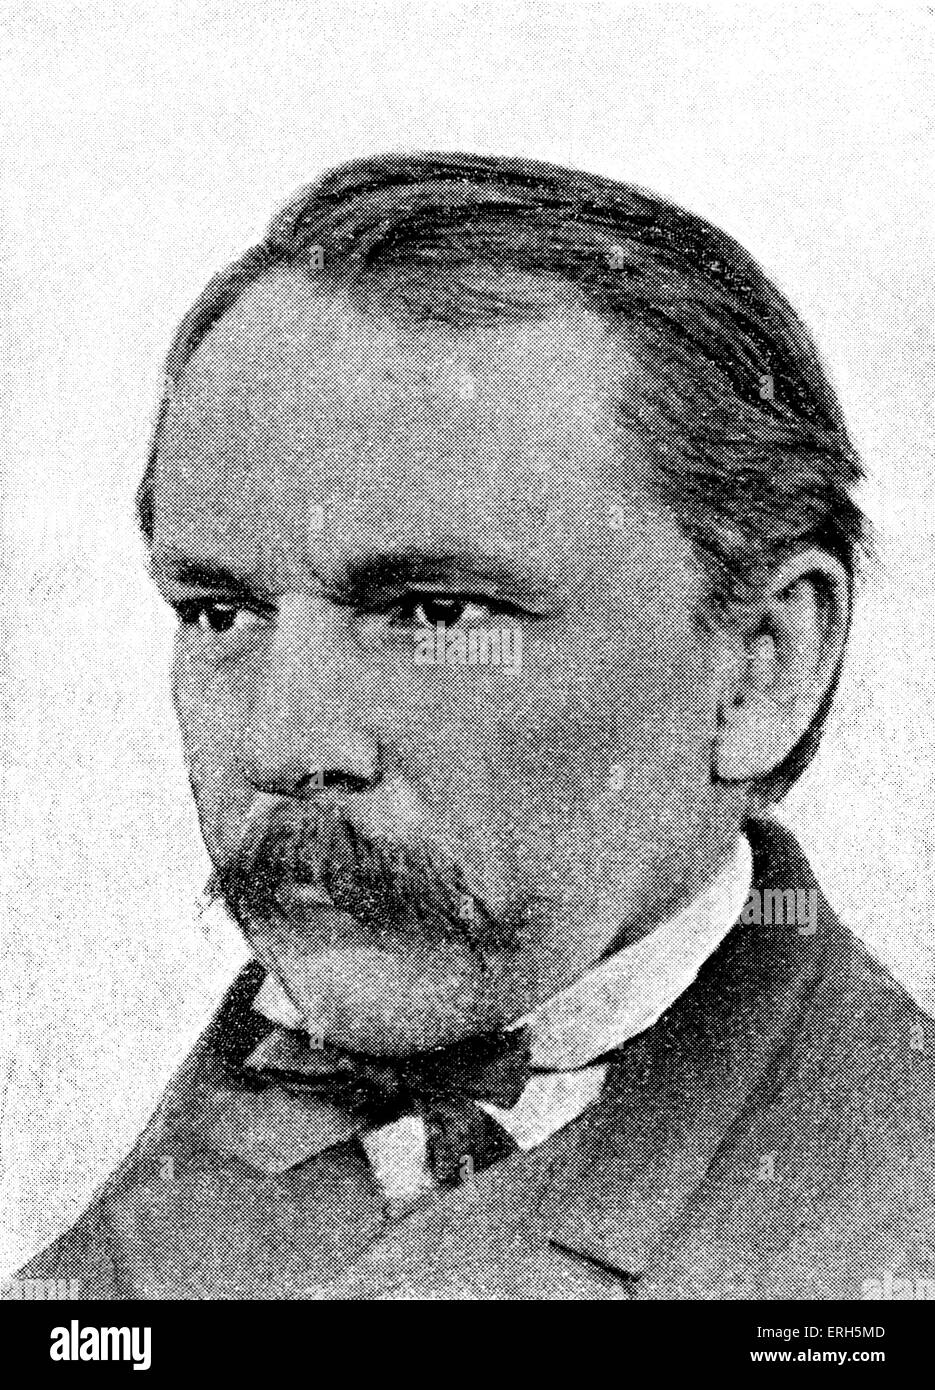 Philipp Wolf - Hugo Wolf 's father. Portrait. HW: Austrian composer, 13 March 1860 - 22 February 1903. - Stock Image